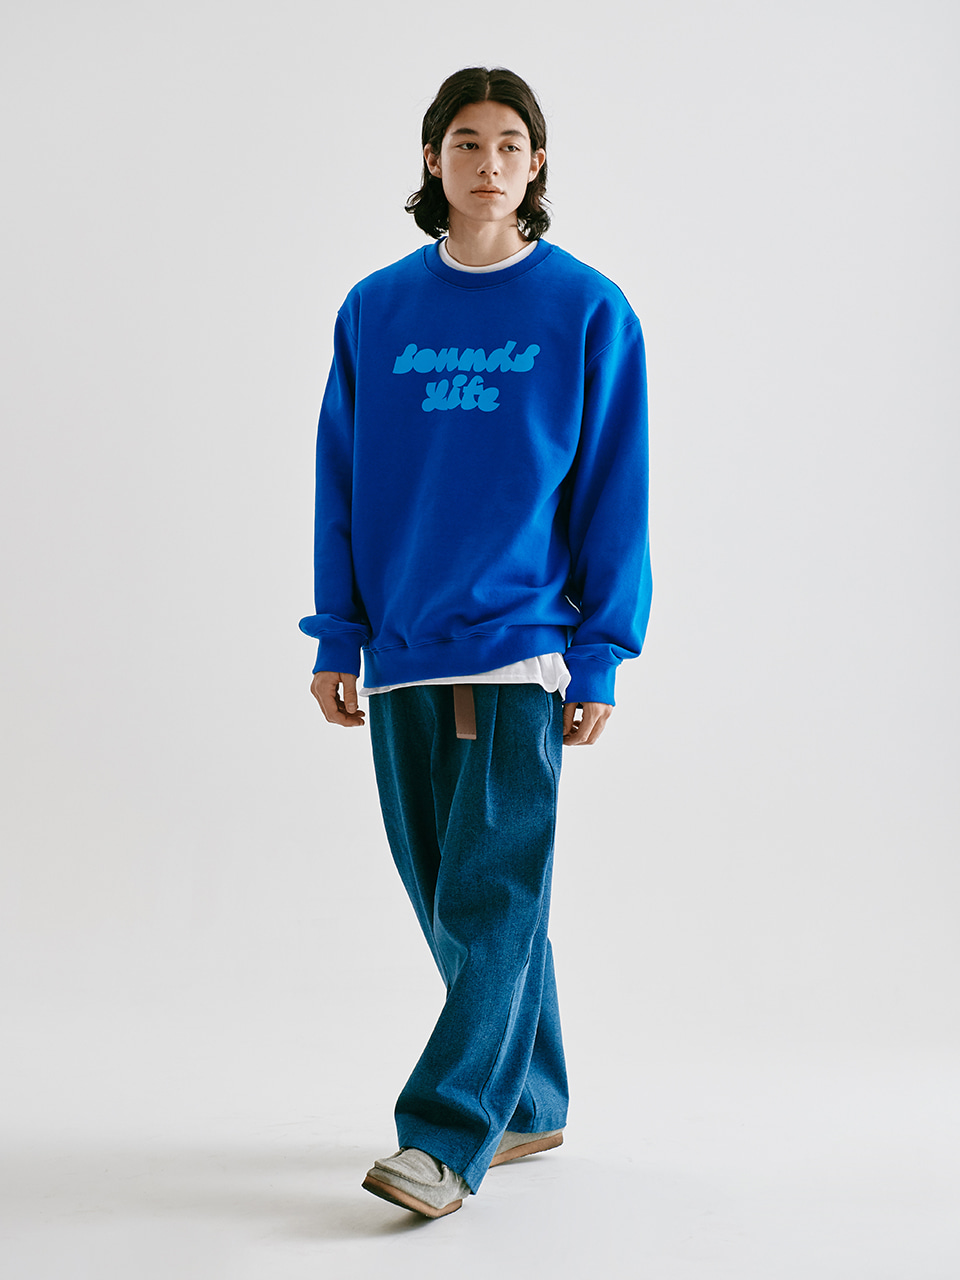 [FW20 Sounds Life] Sounds Life Sweatshirt(Blue) STEREO-SHOP